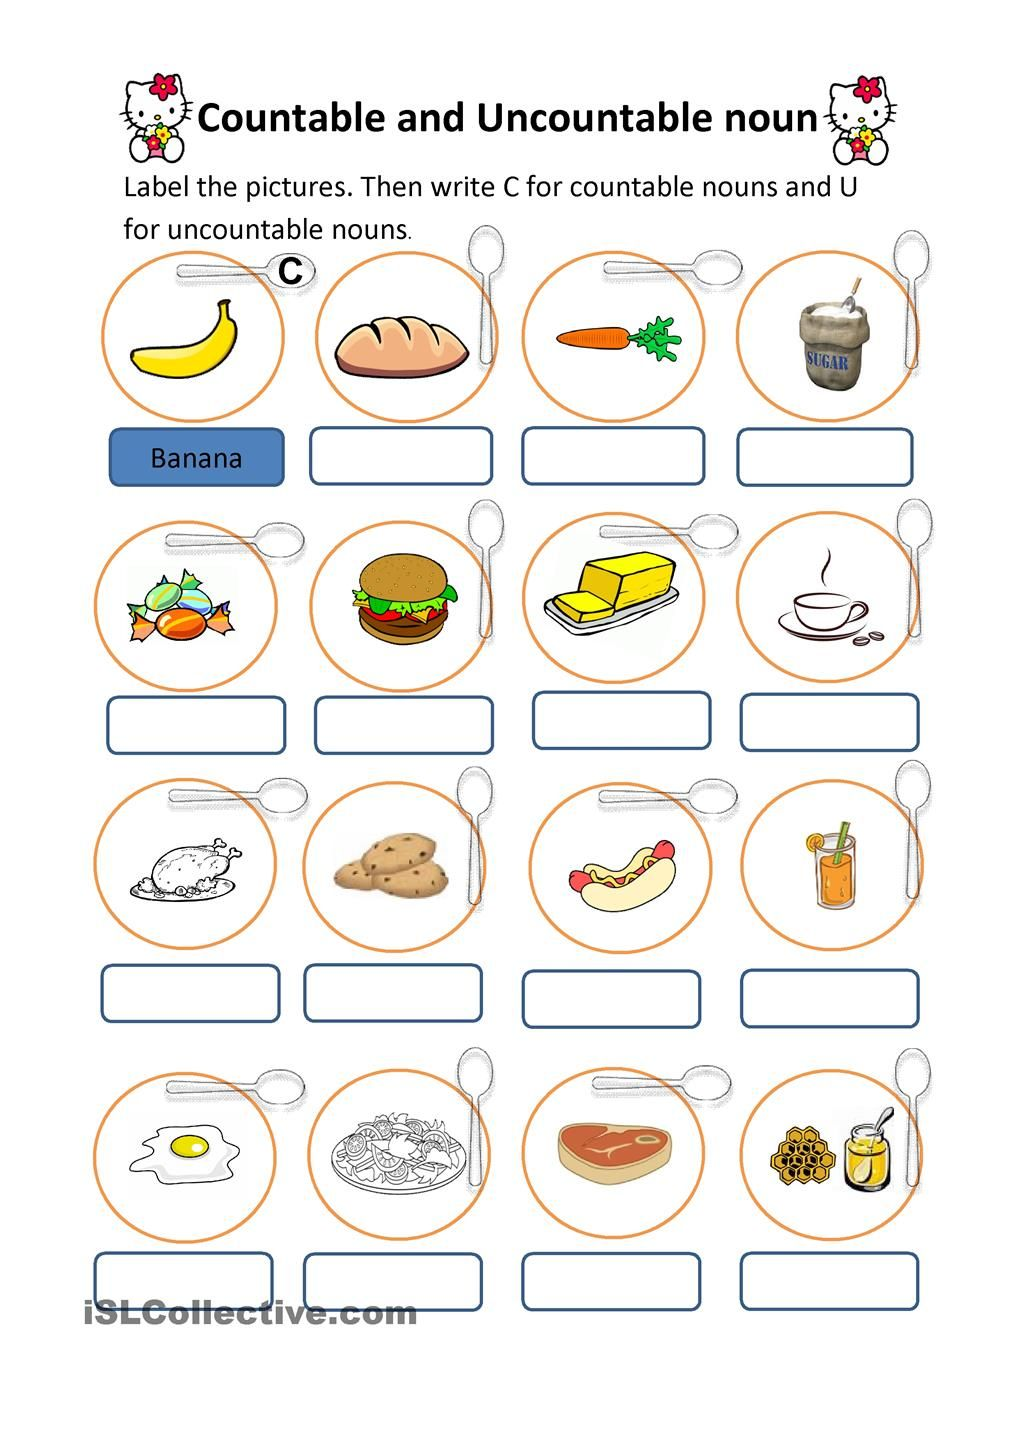 worksheet Count And Noncount Nouns Worksheet countable and uncountable nouns 1 english grammar non count many nouns